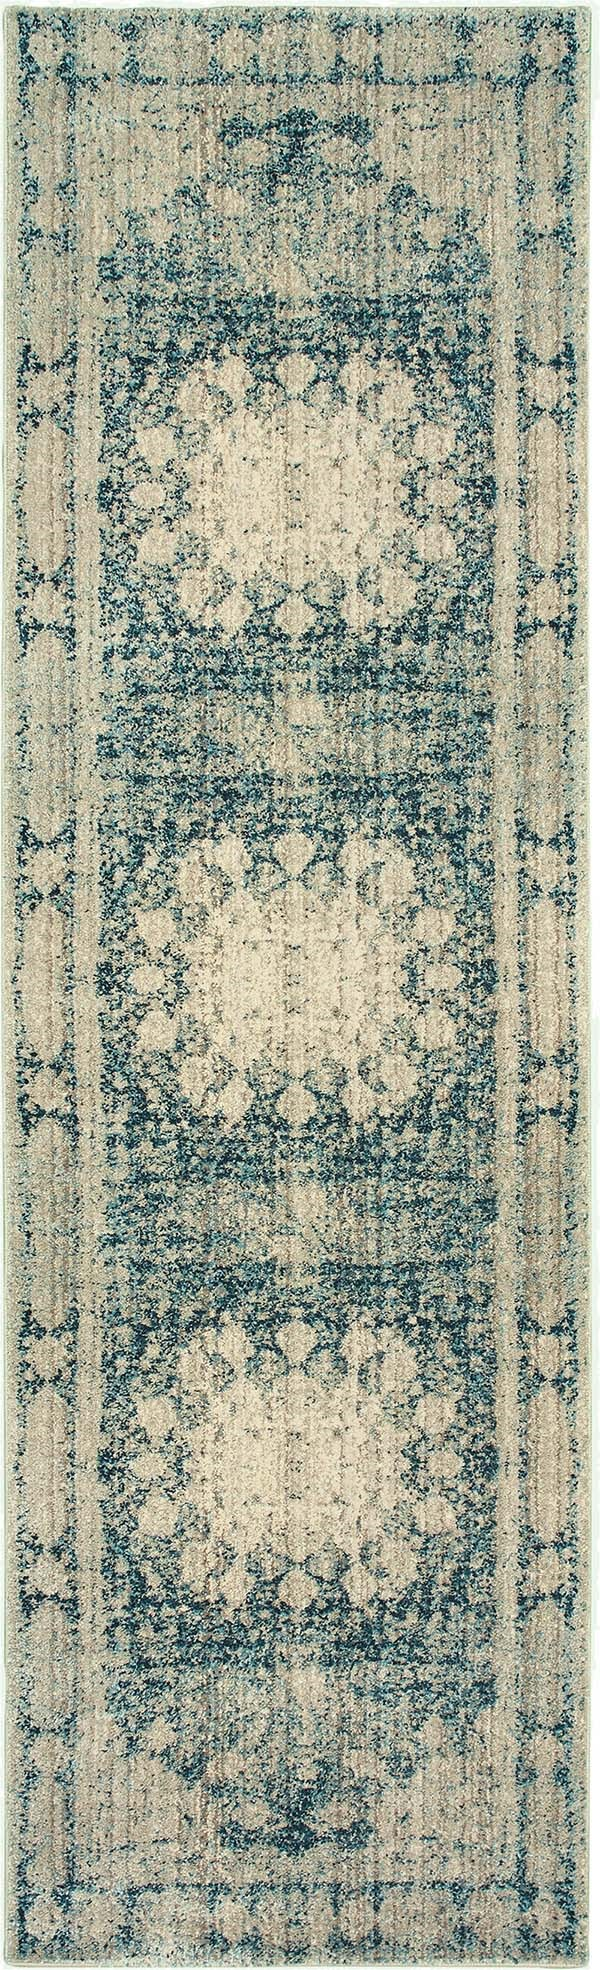 Ivory, Blue Traditional / Oriental Area Rug